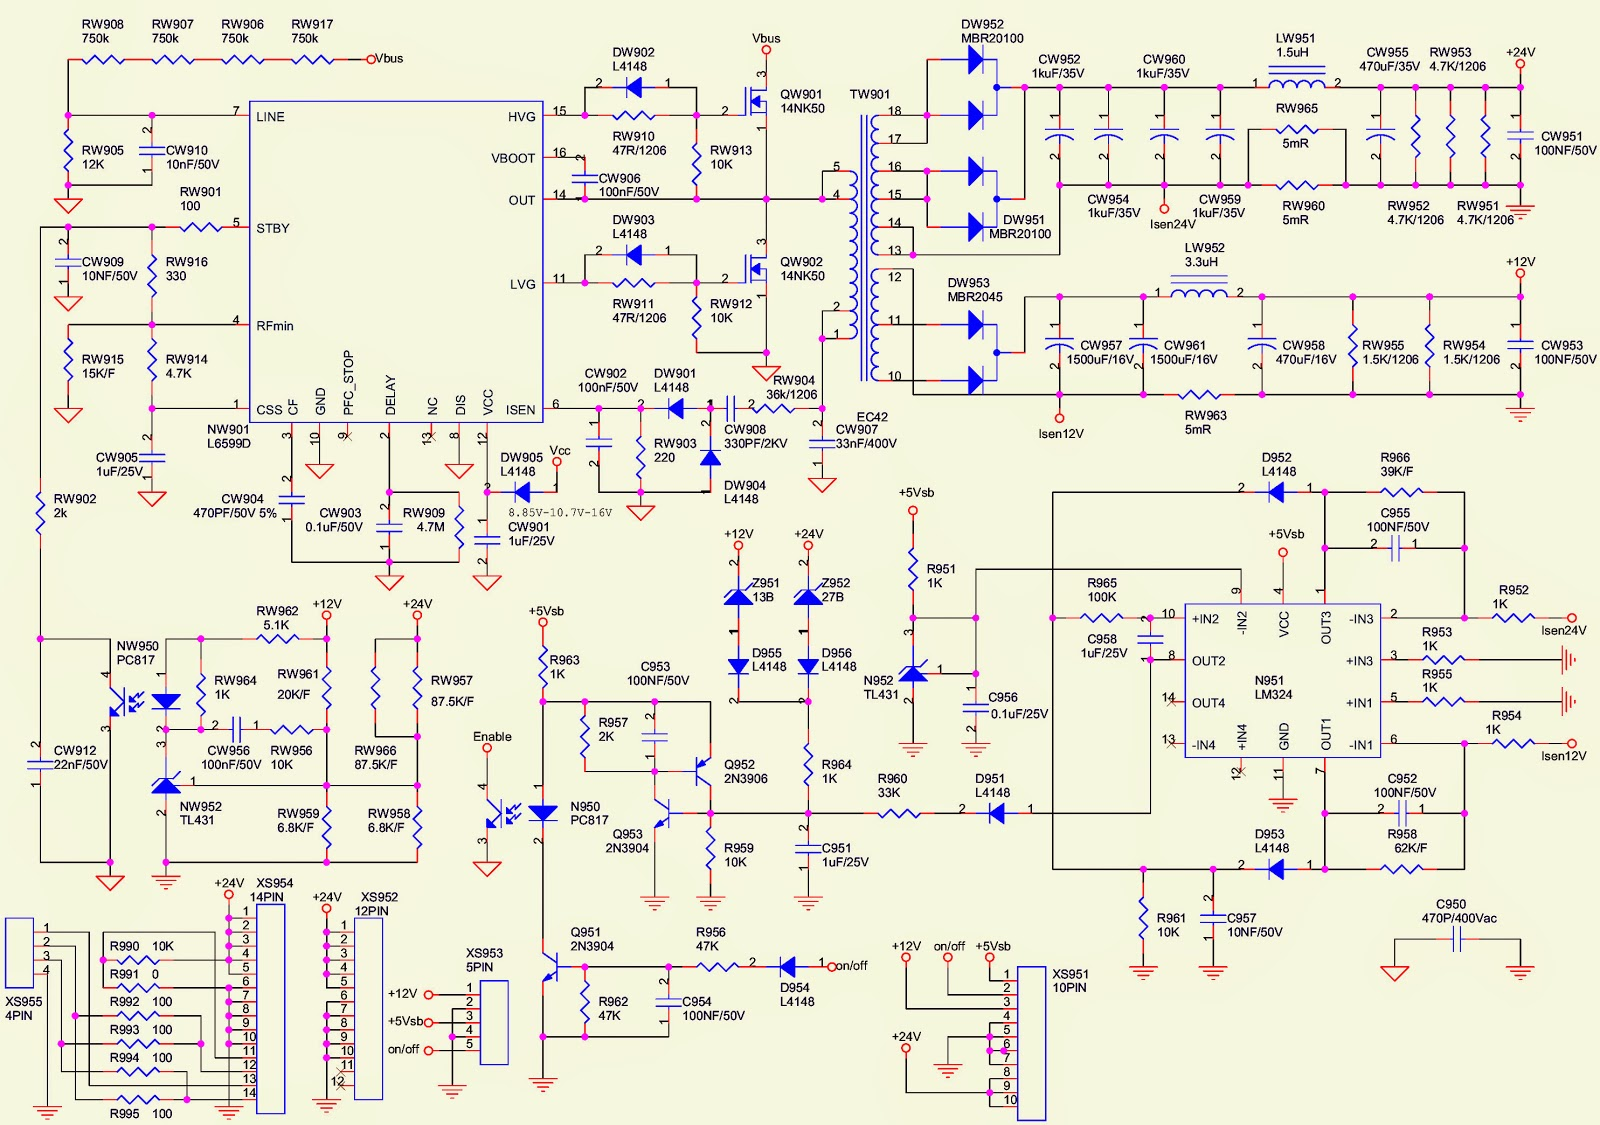 POWER.bmp lc4245w toshiba lcd tv power supply schematic [circuit diagram toshiba motor wiring diagram at creativeand.co